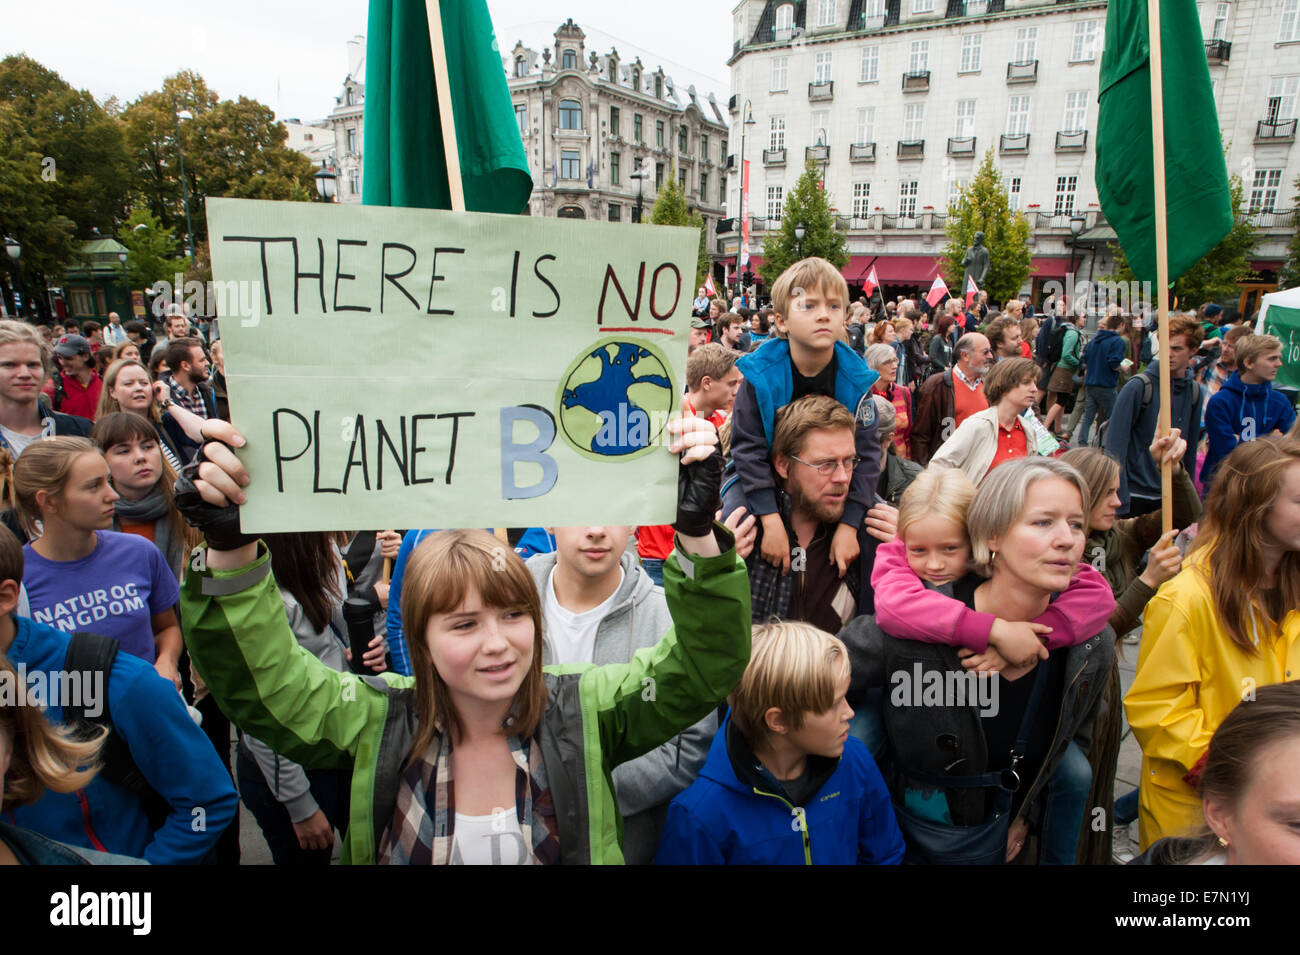 Oslo, Norway. 21st Sep, 2014. A sign reads, 'There Is No Planet B', as parents carry children among thousands - Stock Image